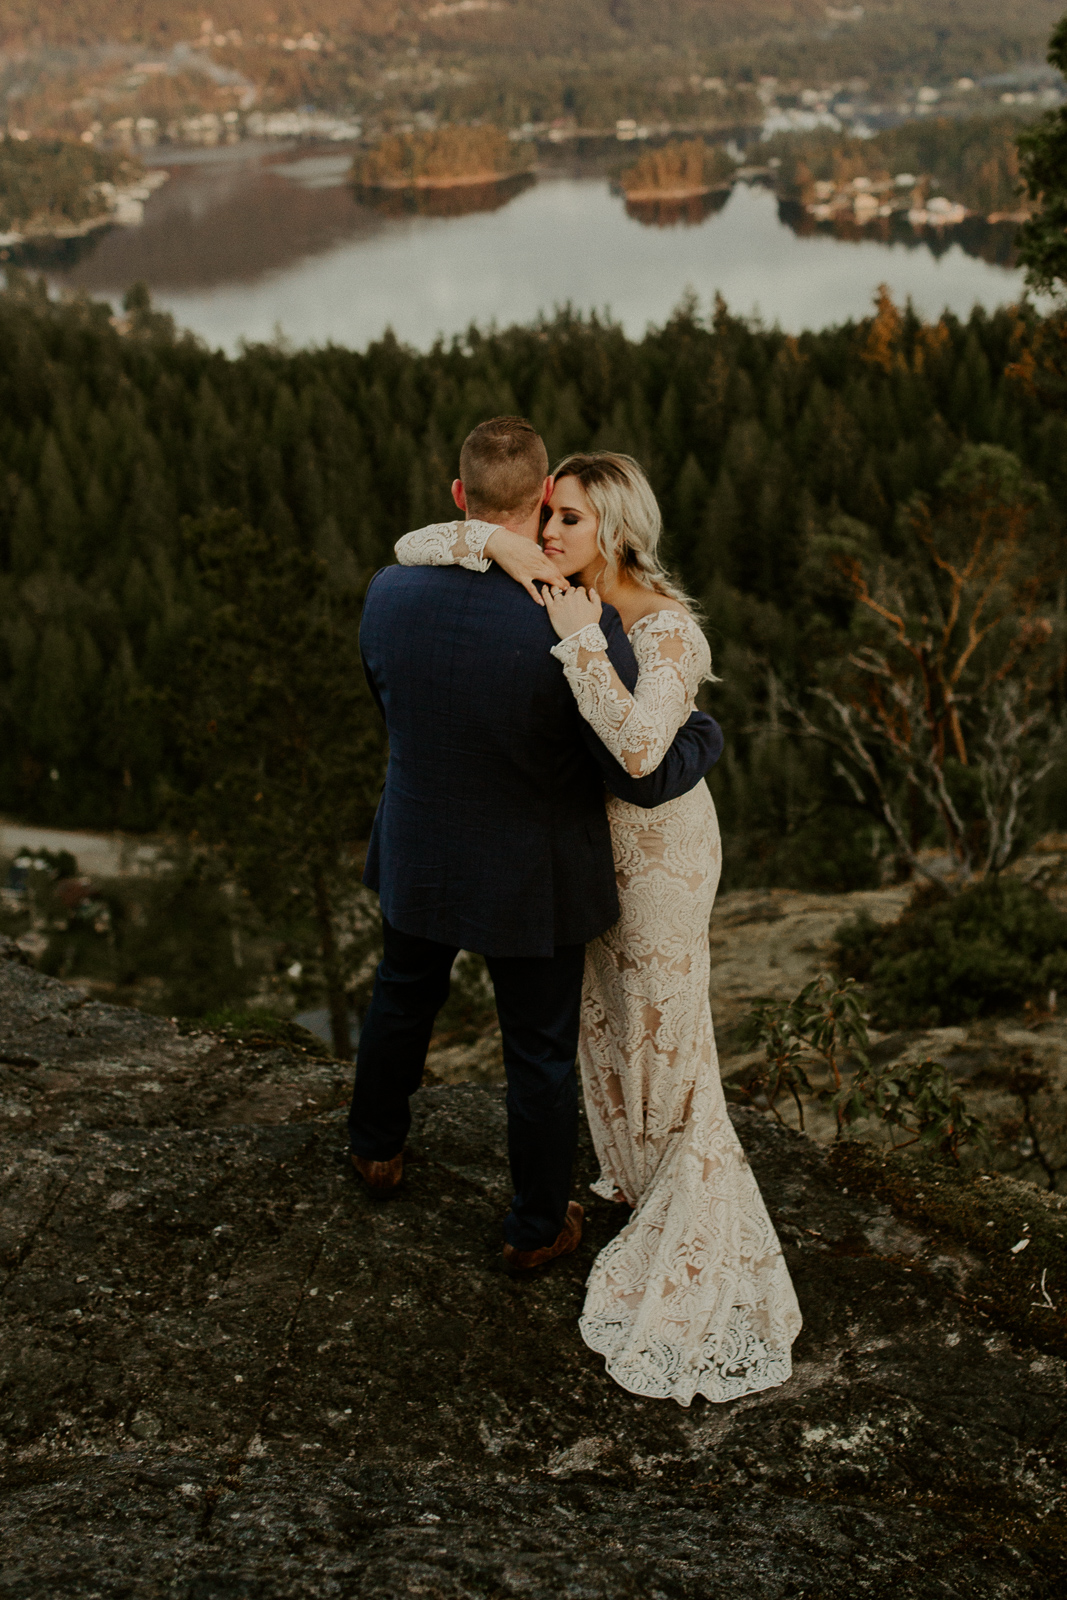 Luke Lambertson Photo_BritishColumbia_Canada_AdventurousCouple_Elopement_IMG-8542.jpg